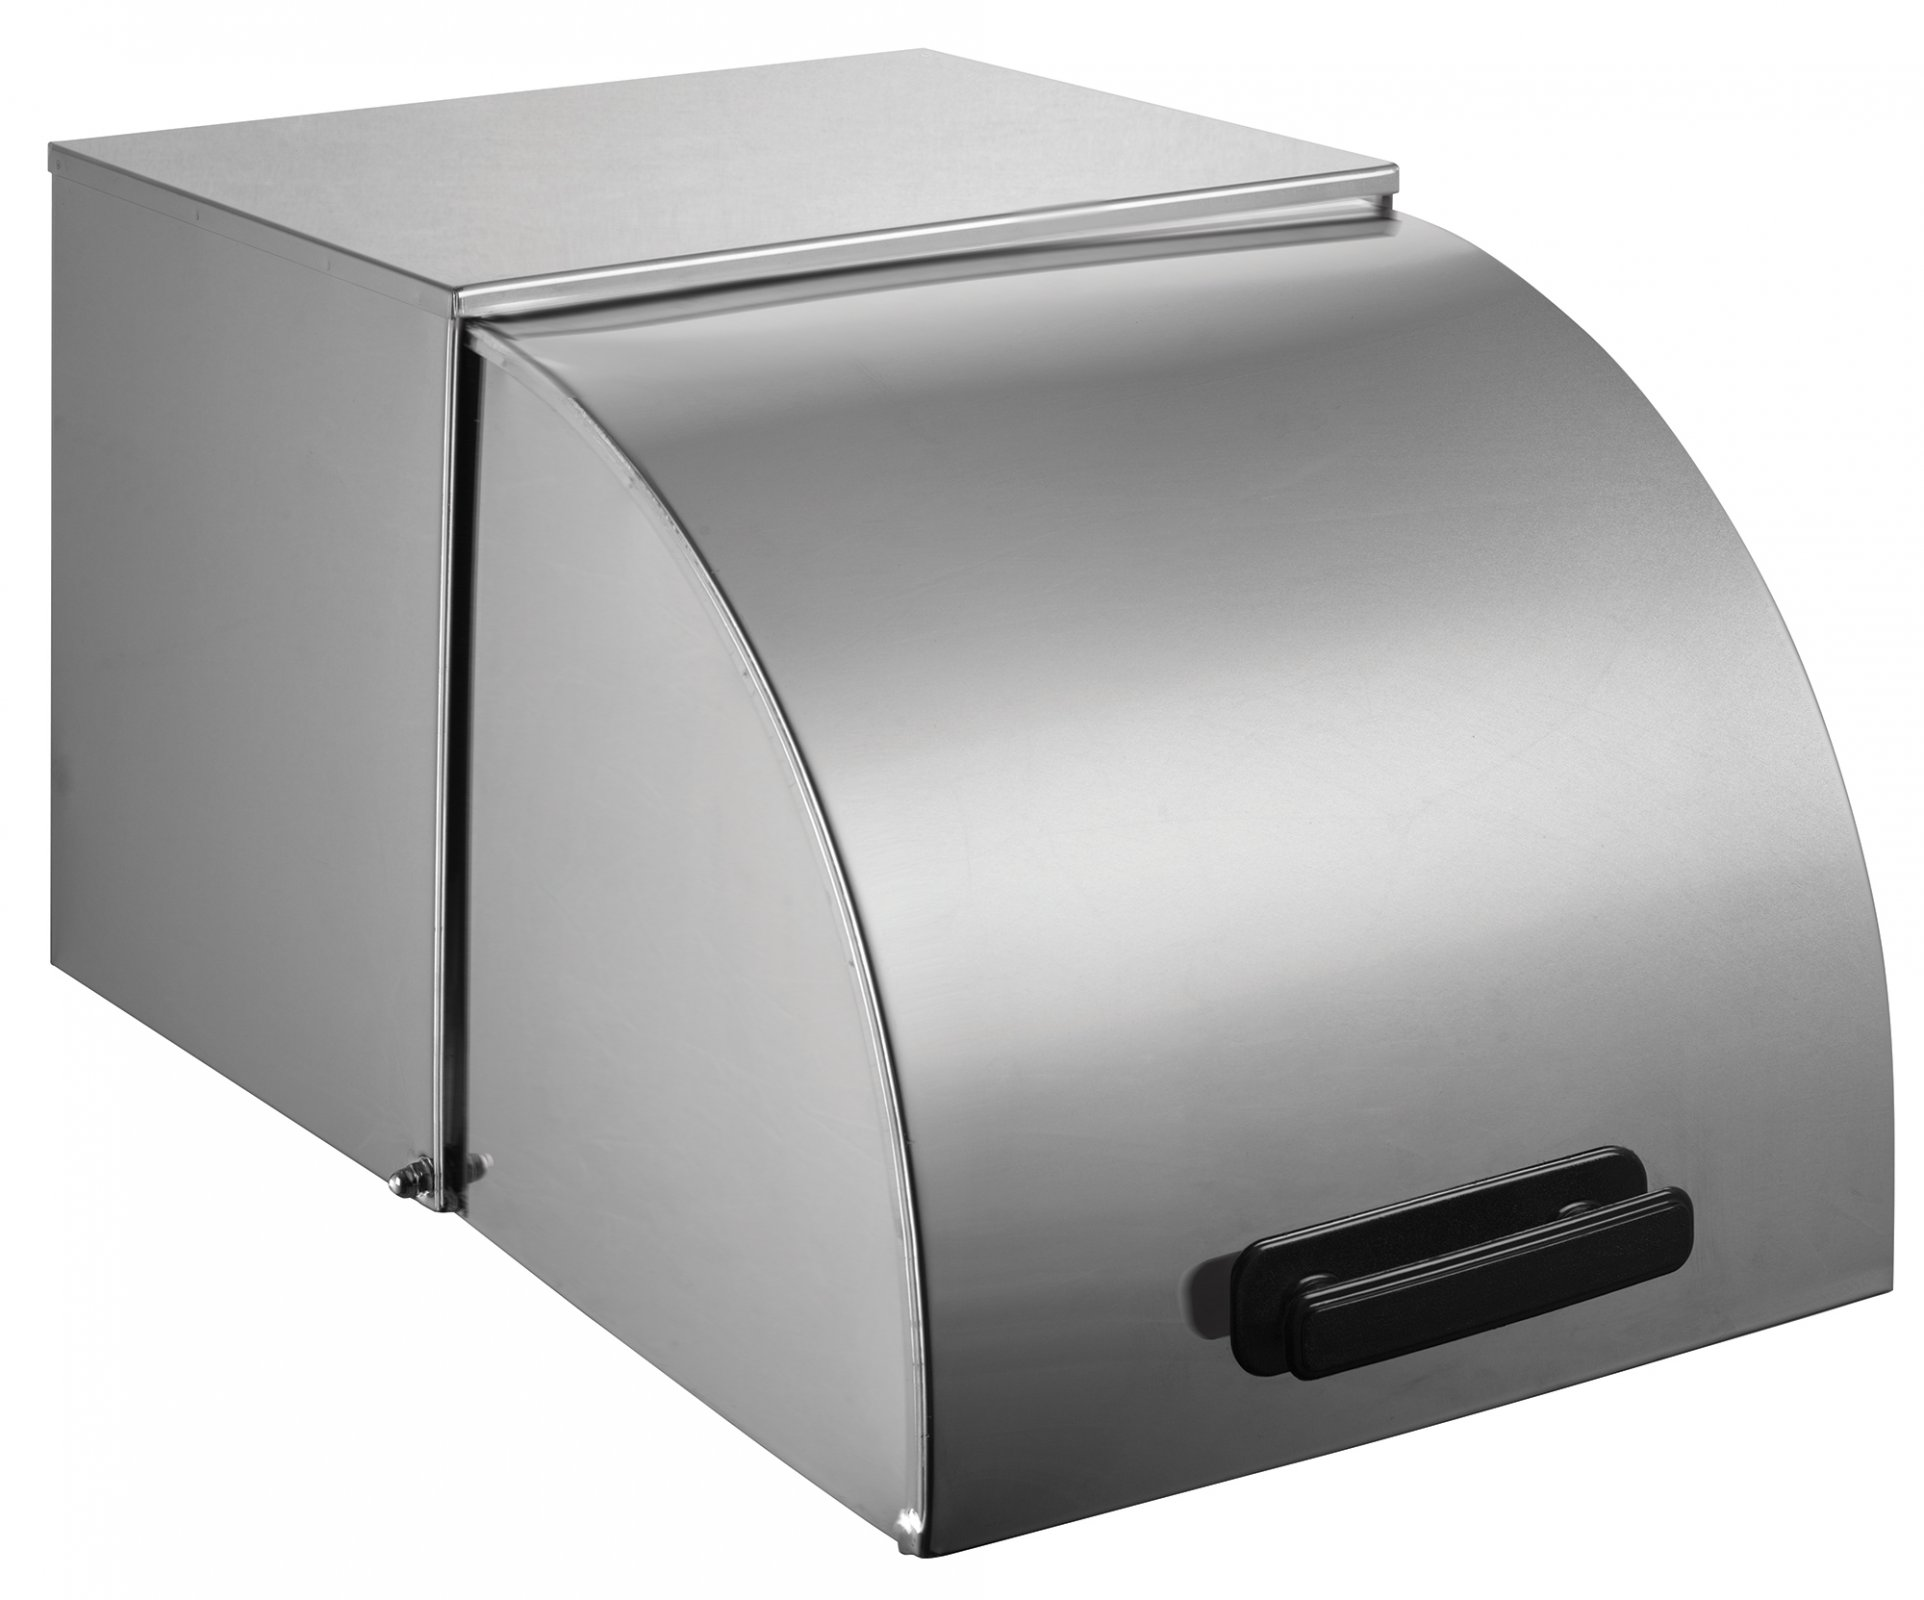 Roll Top Cover for food pan, 20-3/4 x 13 x 11-7/8